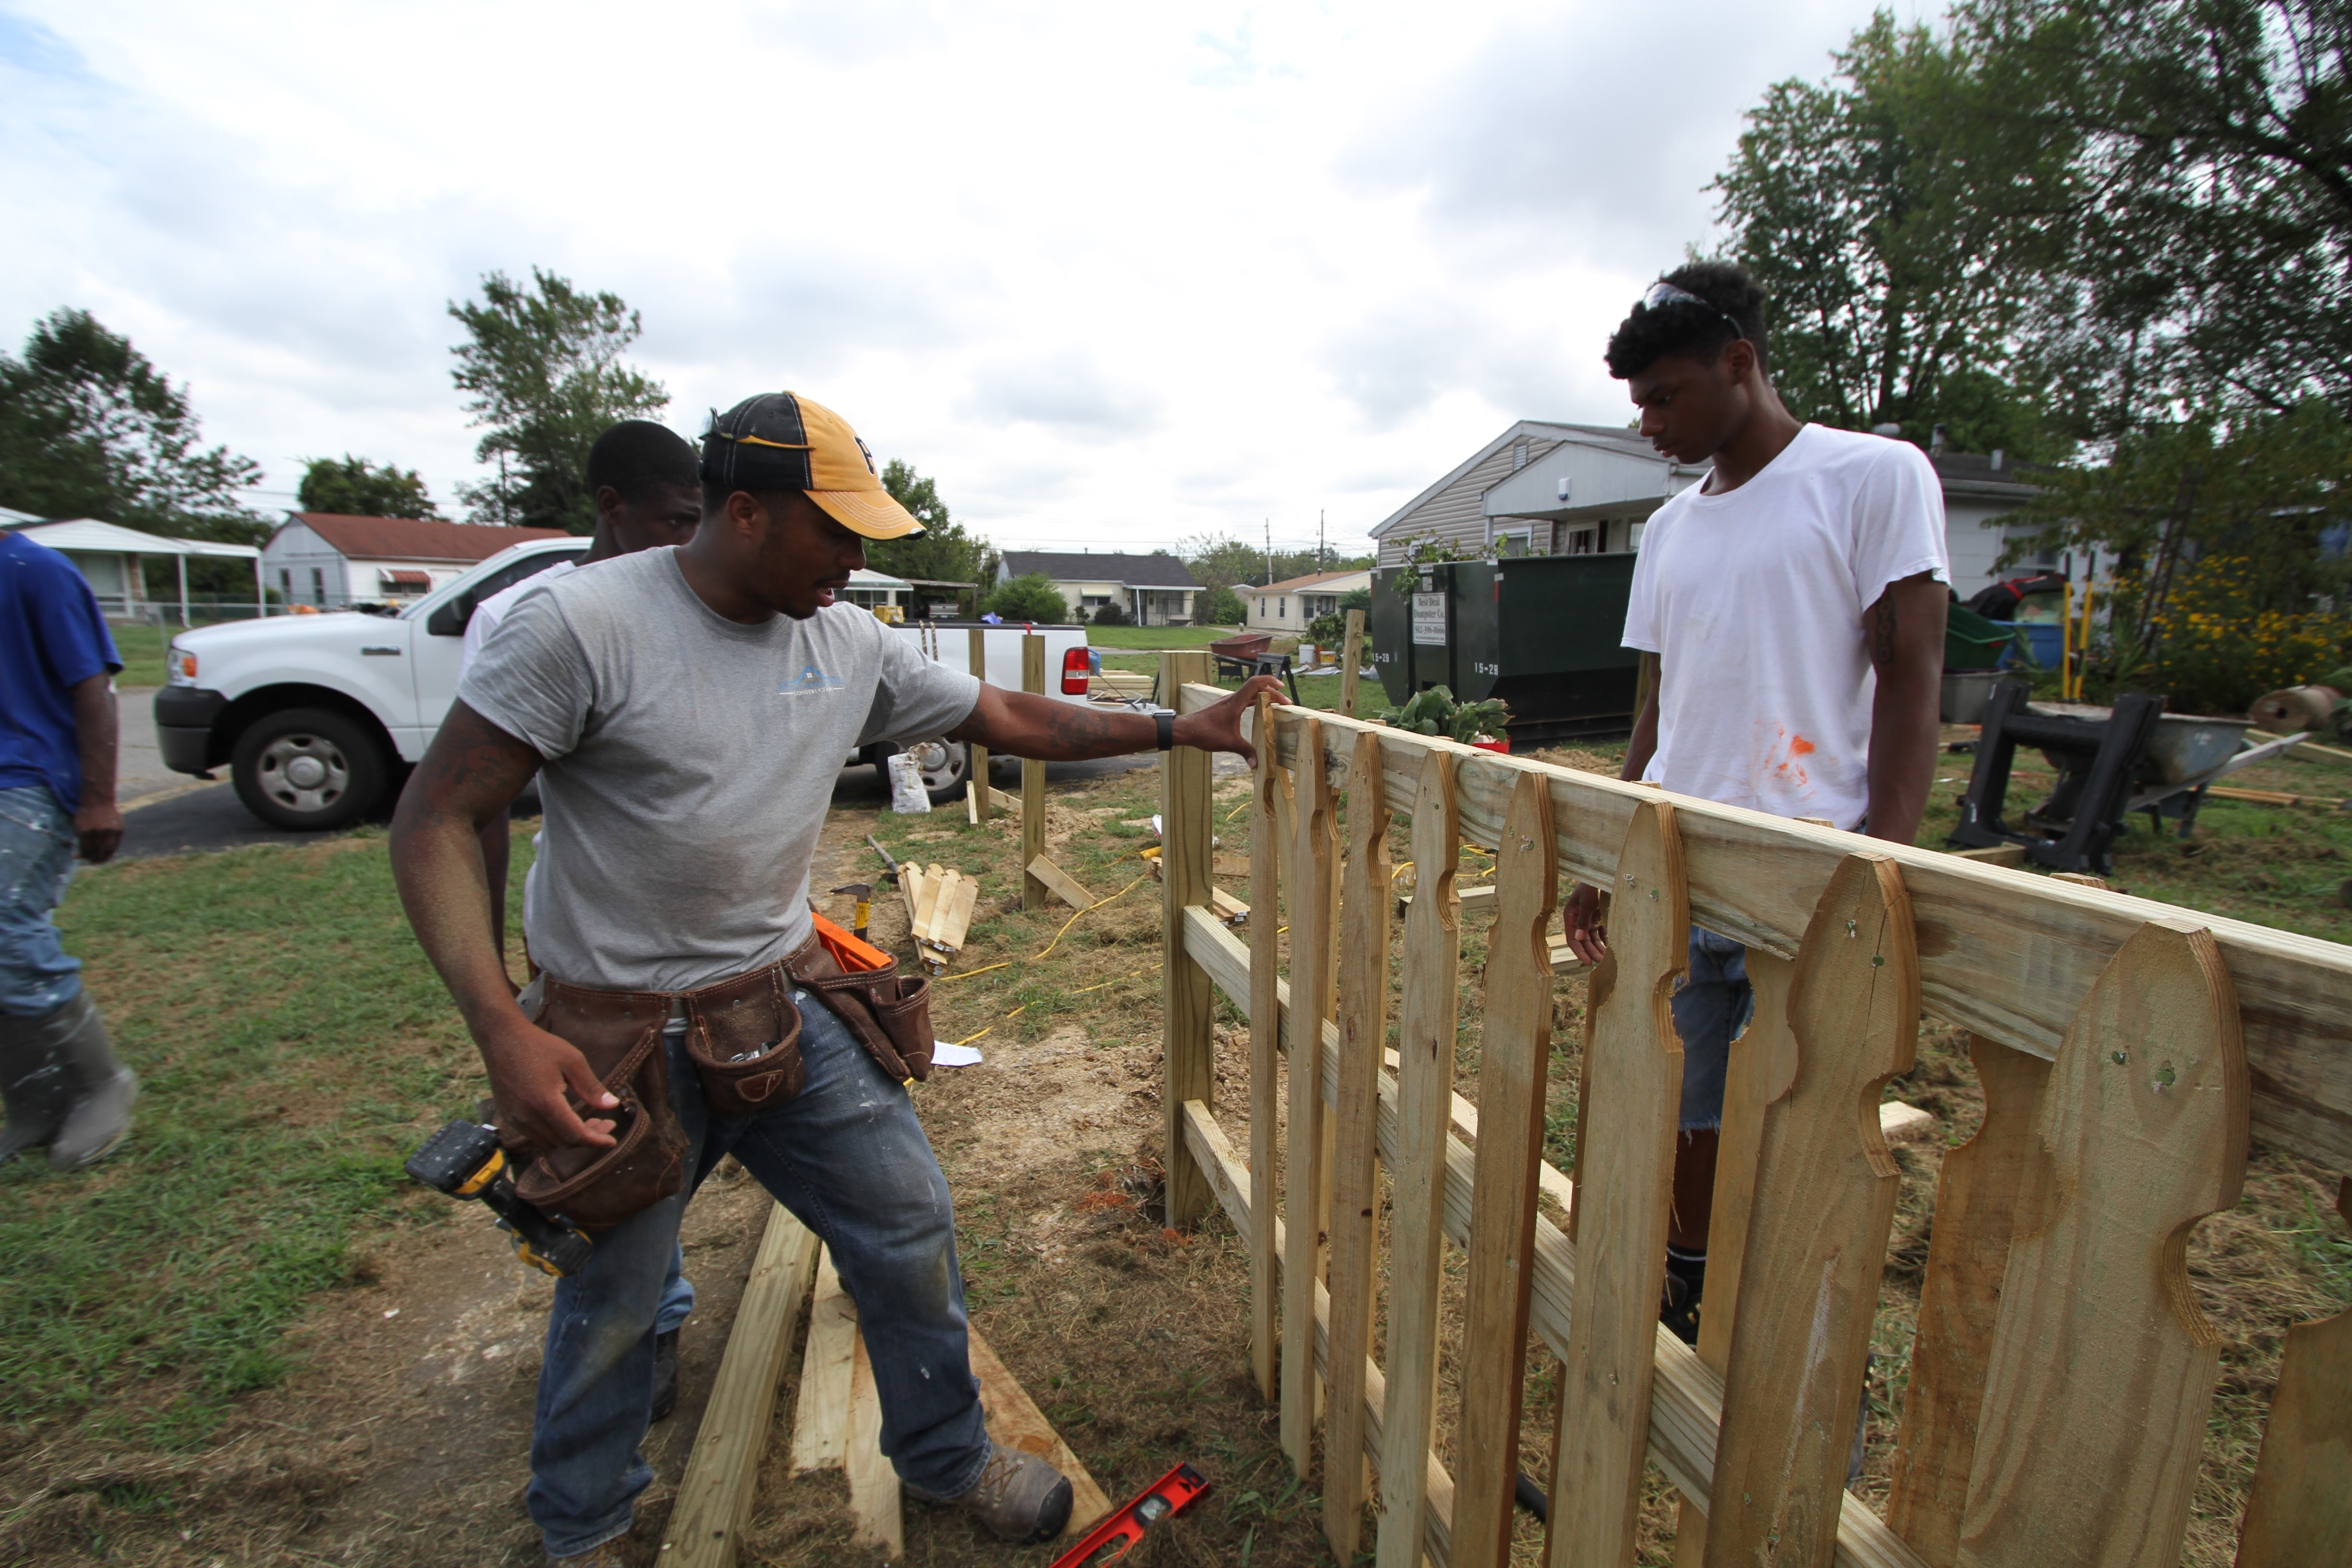 James Hooten turned left behind his criminal youth, and built a new life with help from the department's YouthBuild program.